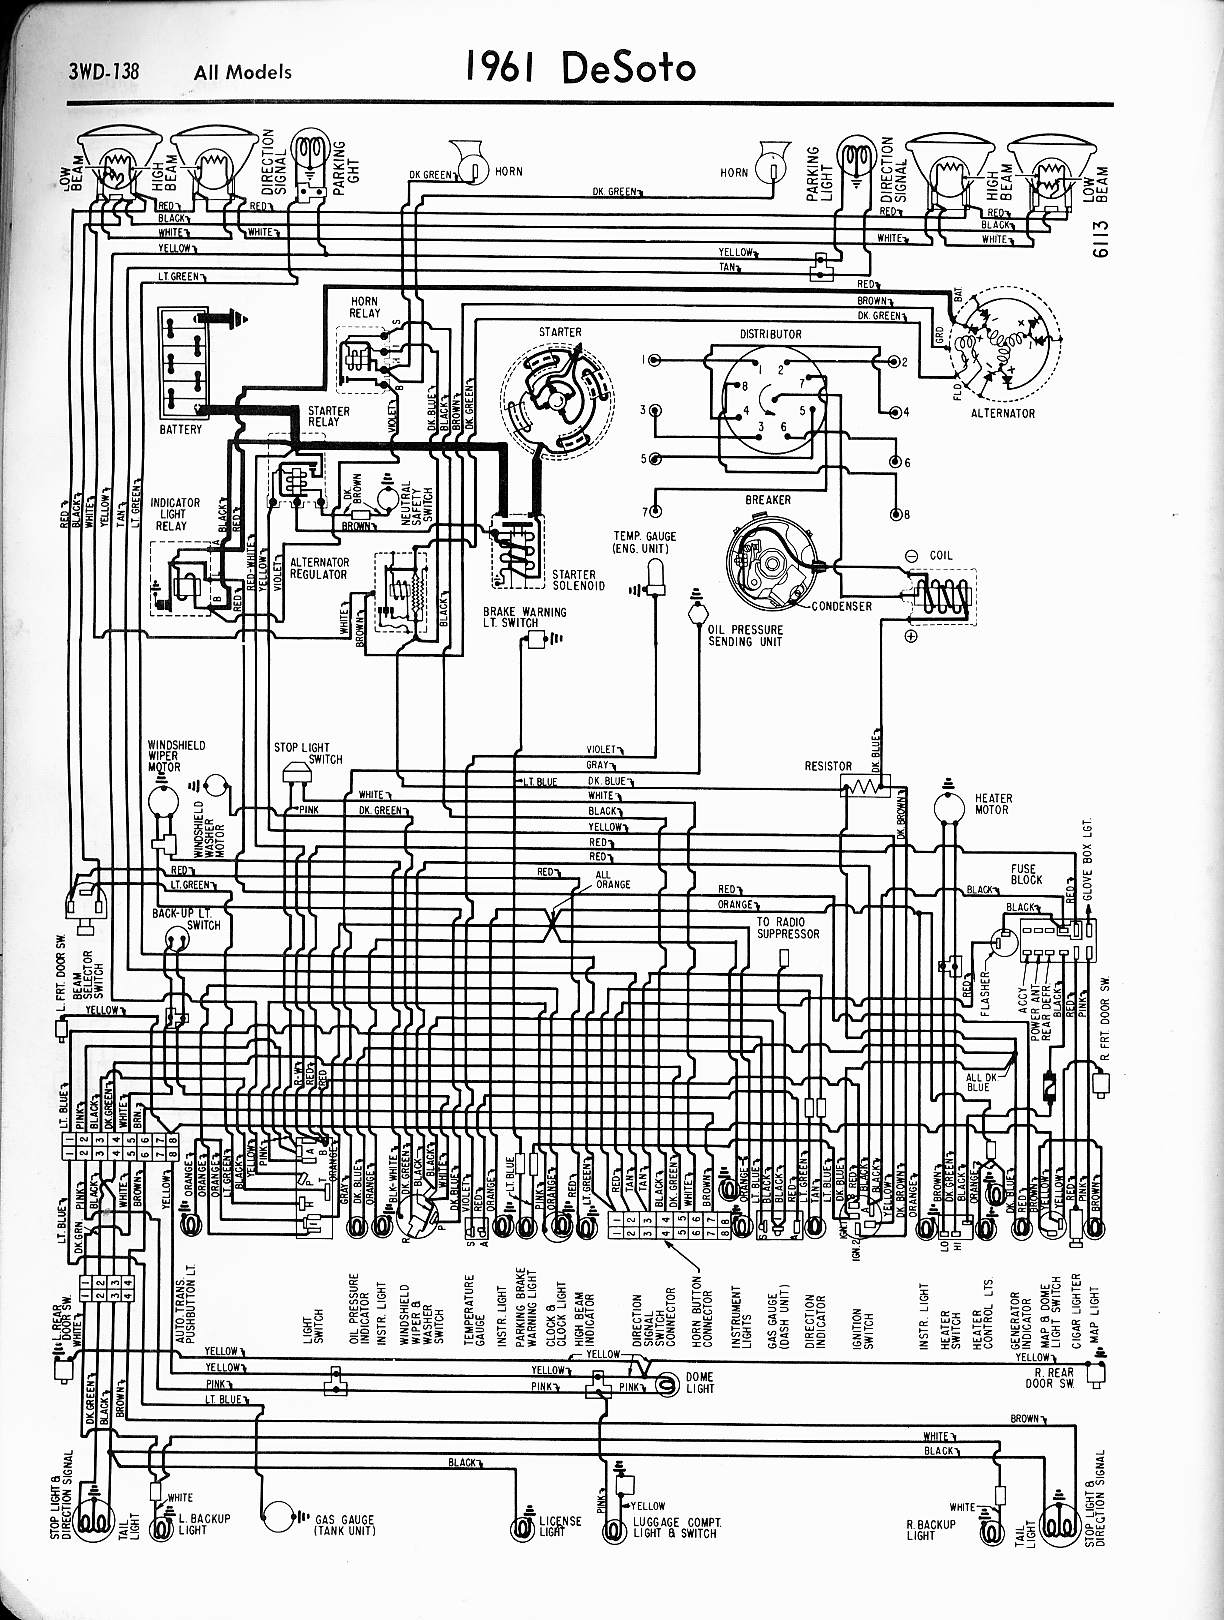 1951 Desoto Wiring Diagram Wiring Diagram